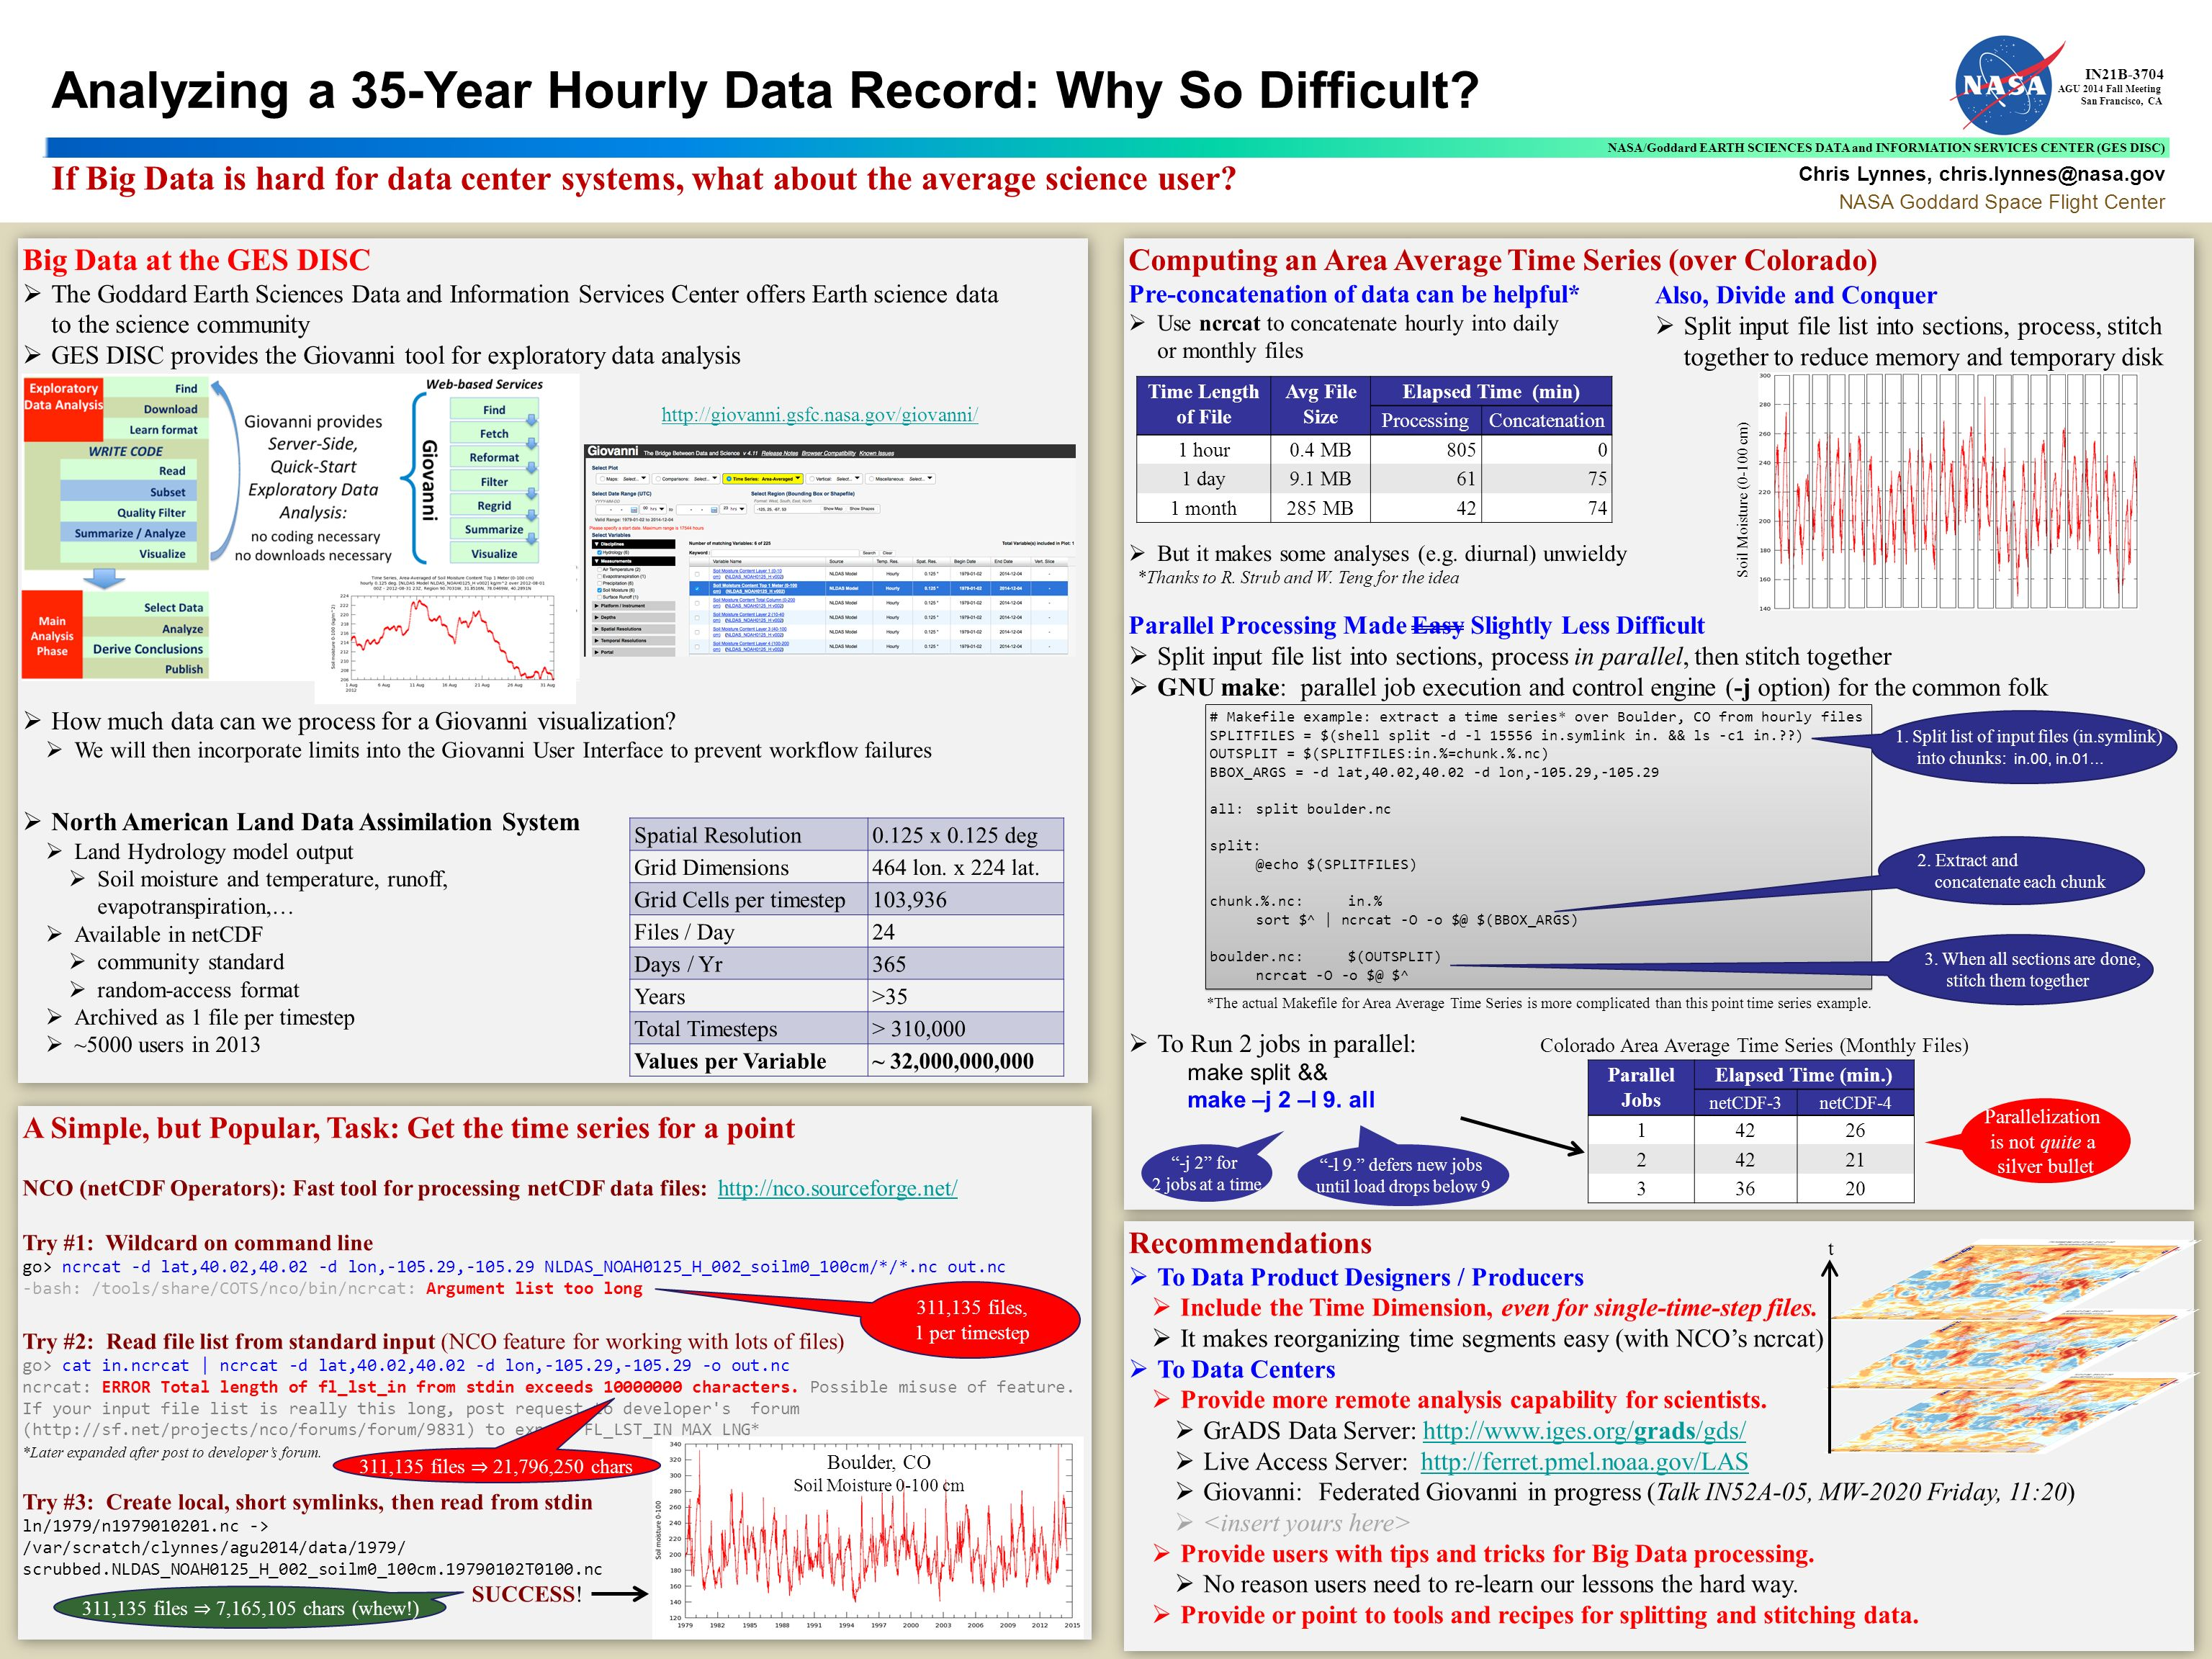 Chris Lynnes, chris.lynnes@nasa.gov NASA Goddard Space Flight Center NASA/Goddard EARTH SCIENCES DATA and INFORMATION SERVICES CENTER (GES DISC) Analyzing a 35-Year Hourly Data Record: Why So Difficult.